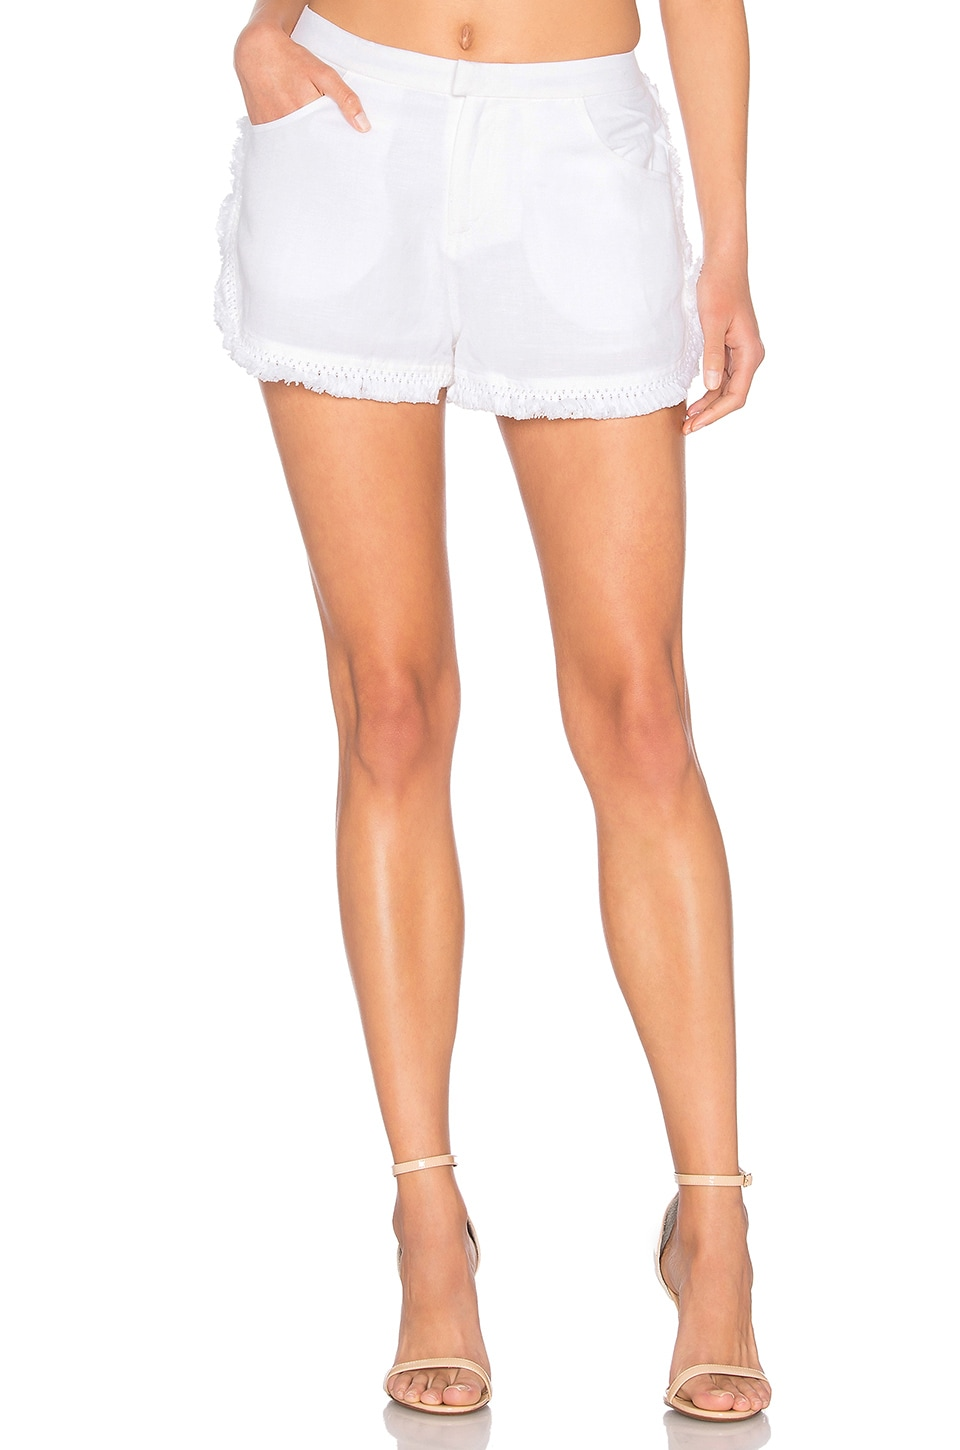 Turismo Shorts by THE JETSET DIARIES